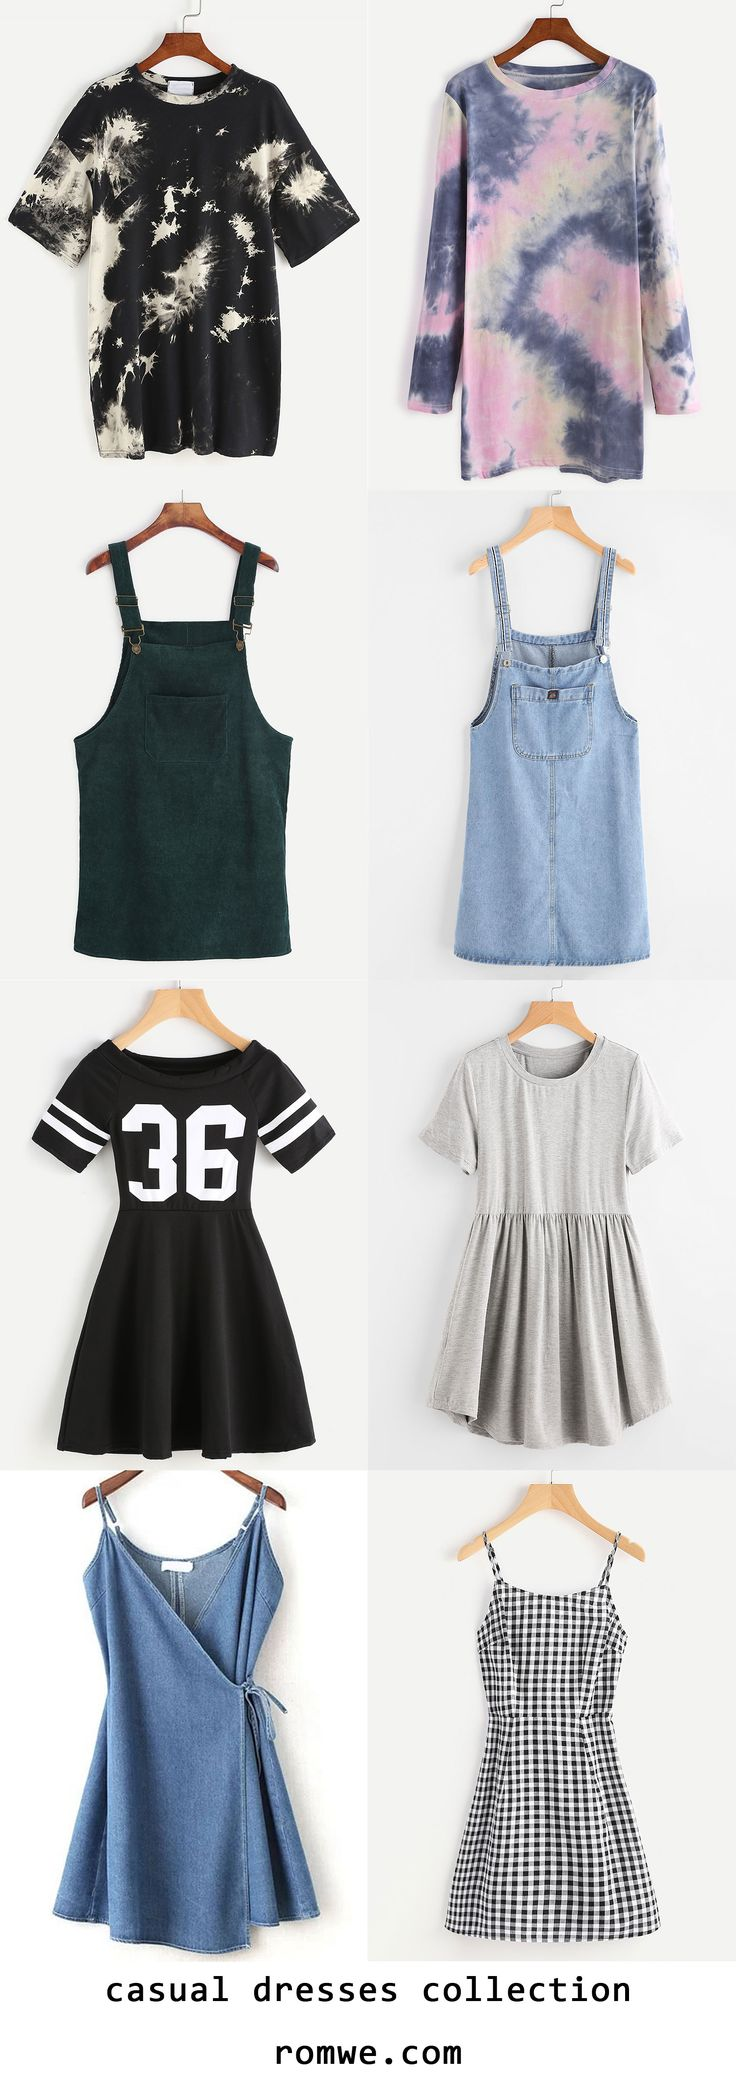 casual dresses collection 2017 - romwe.com